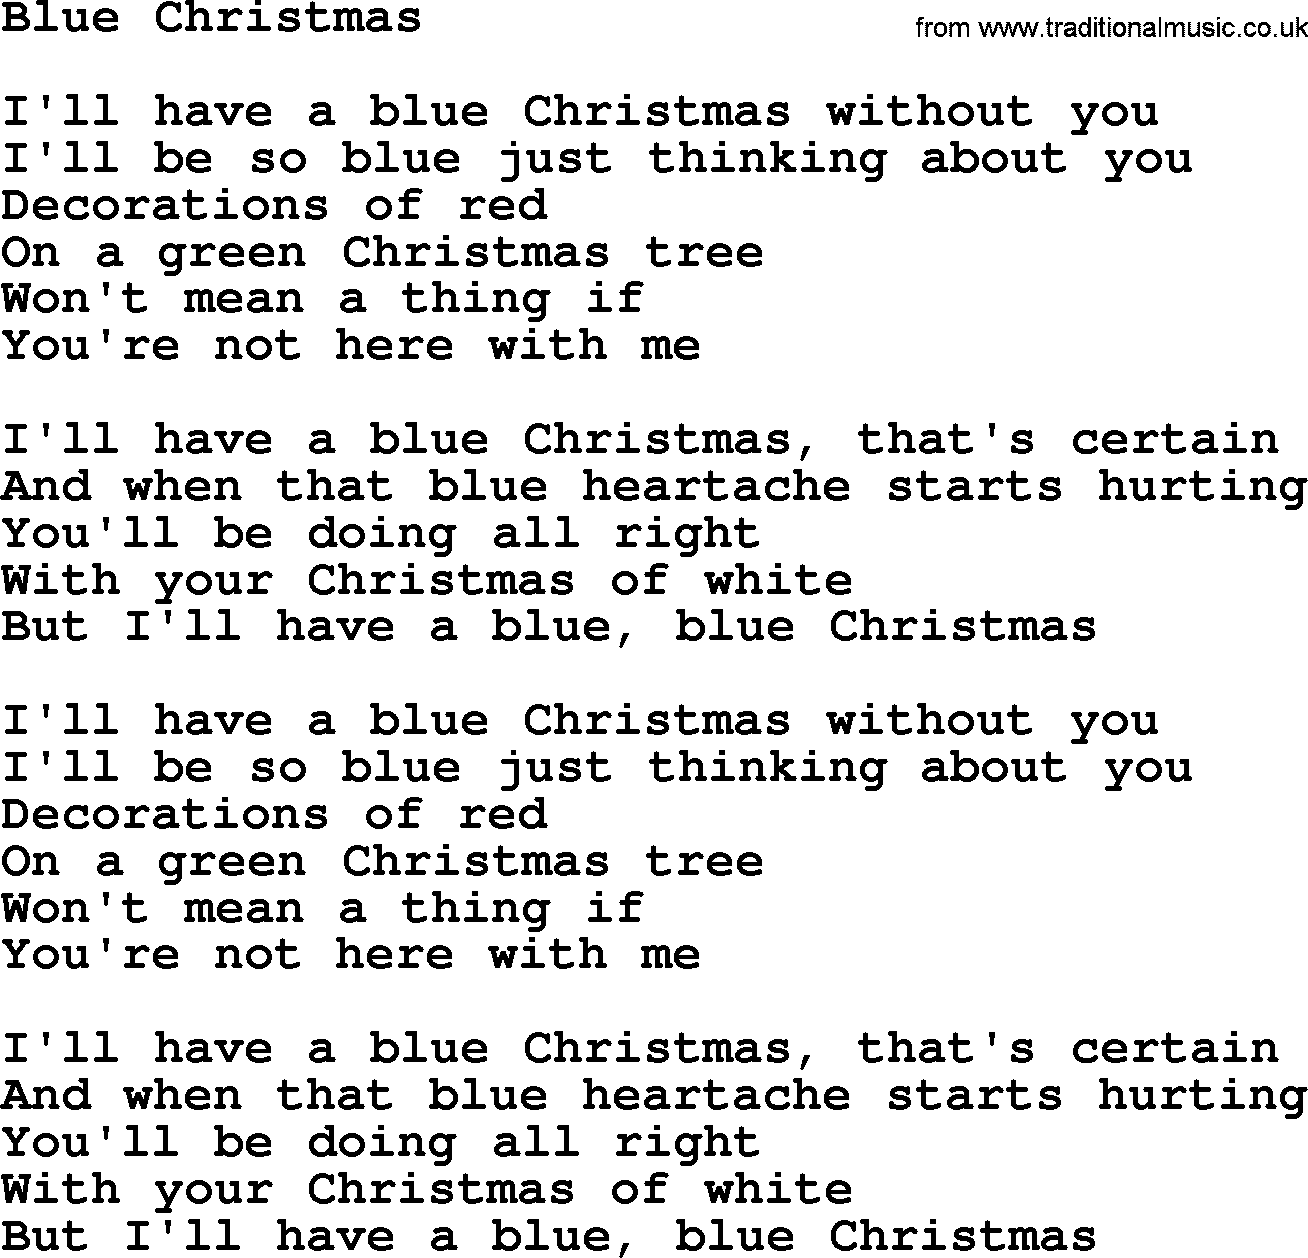 bruce springsteen song blue christmas lyrics - I Ll Have A Blue Christmas Lyrics